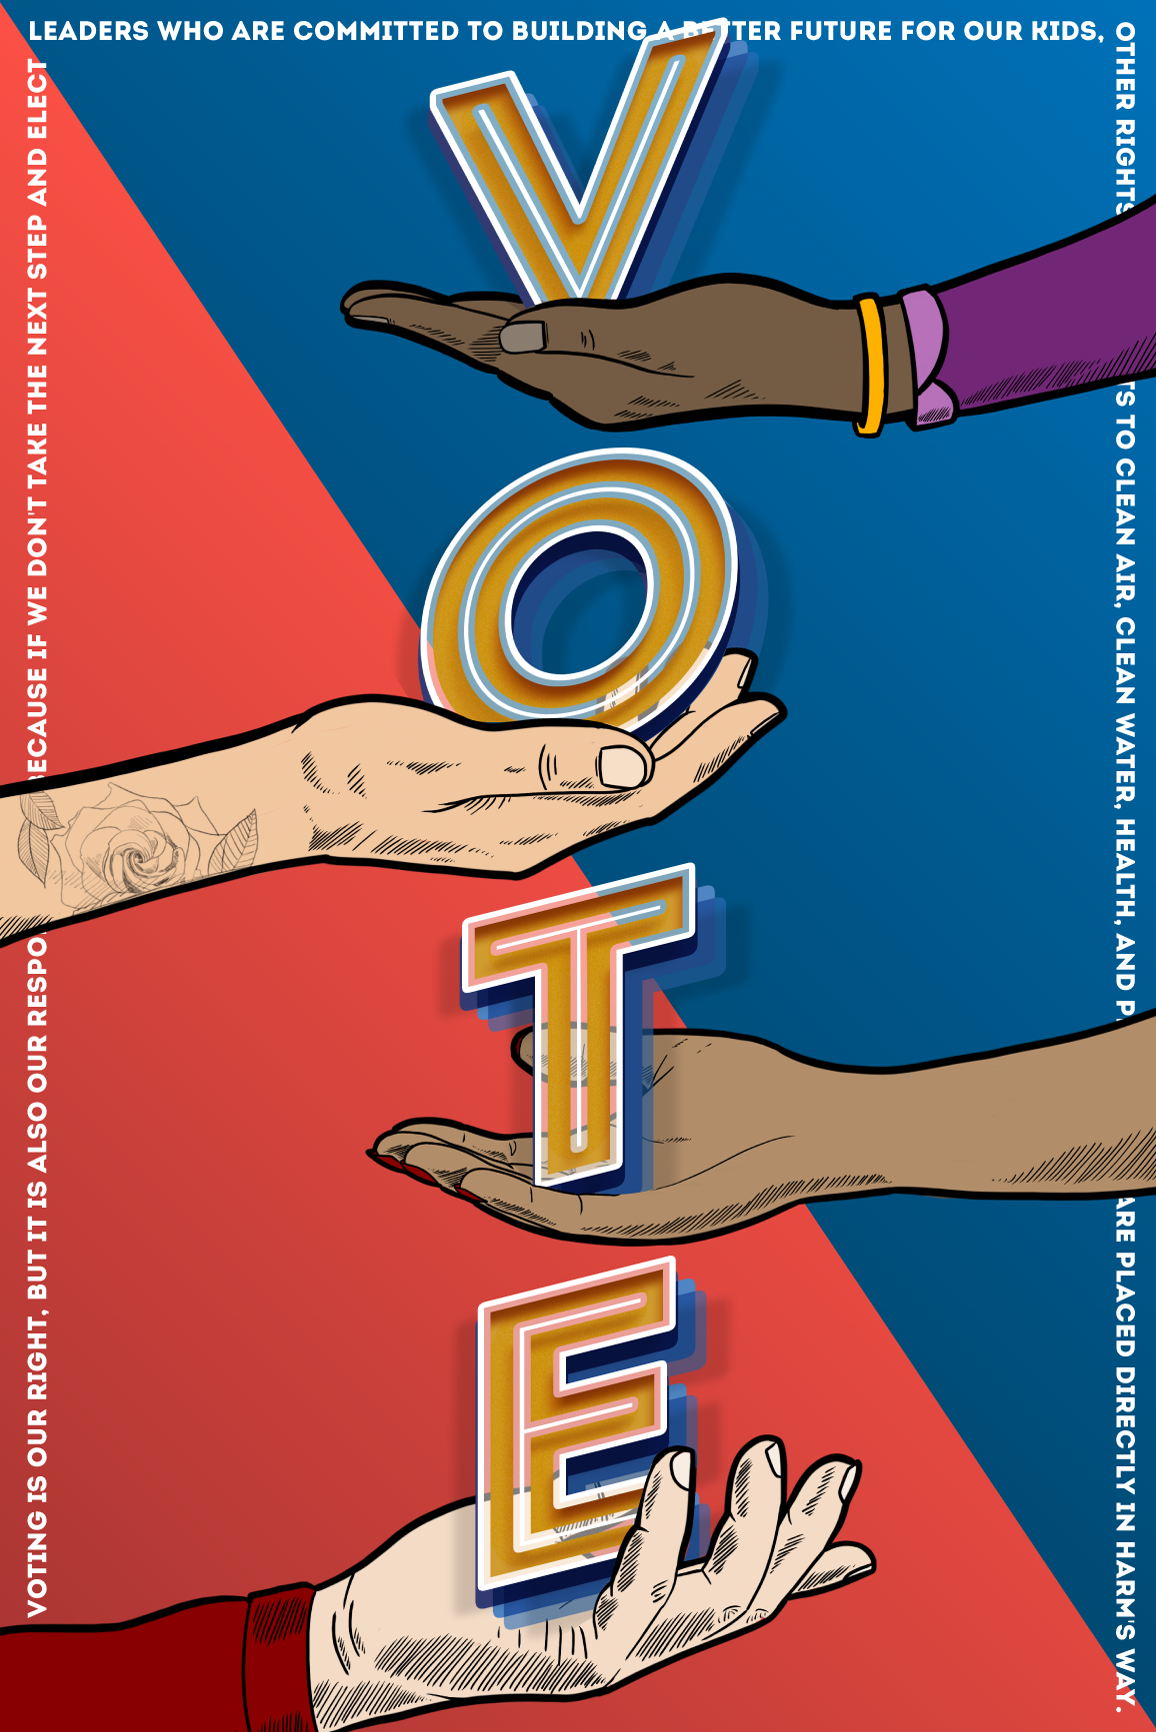 voteposter-1156x1732.png